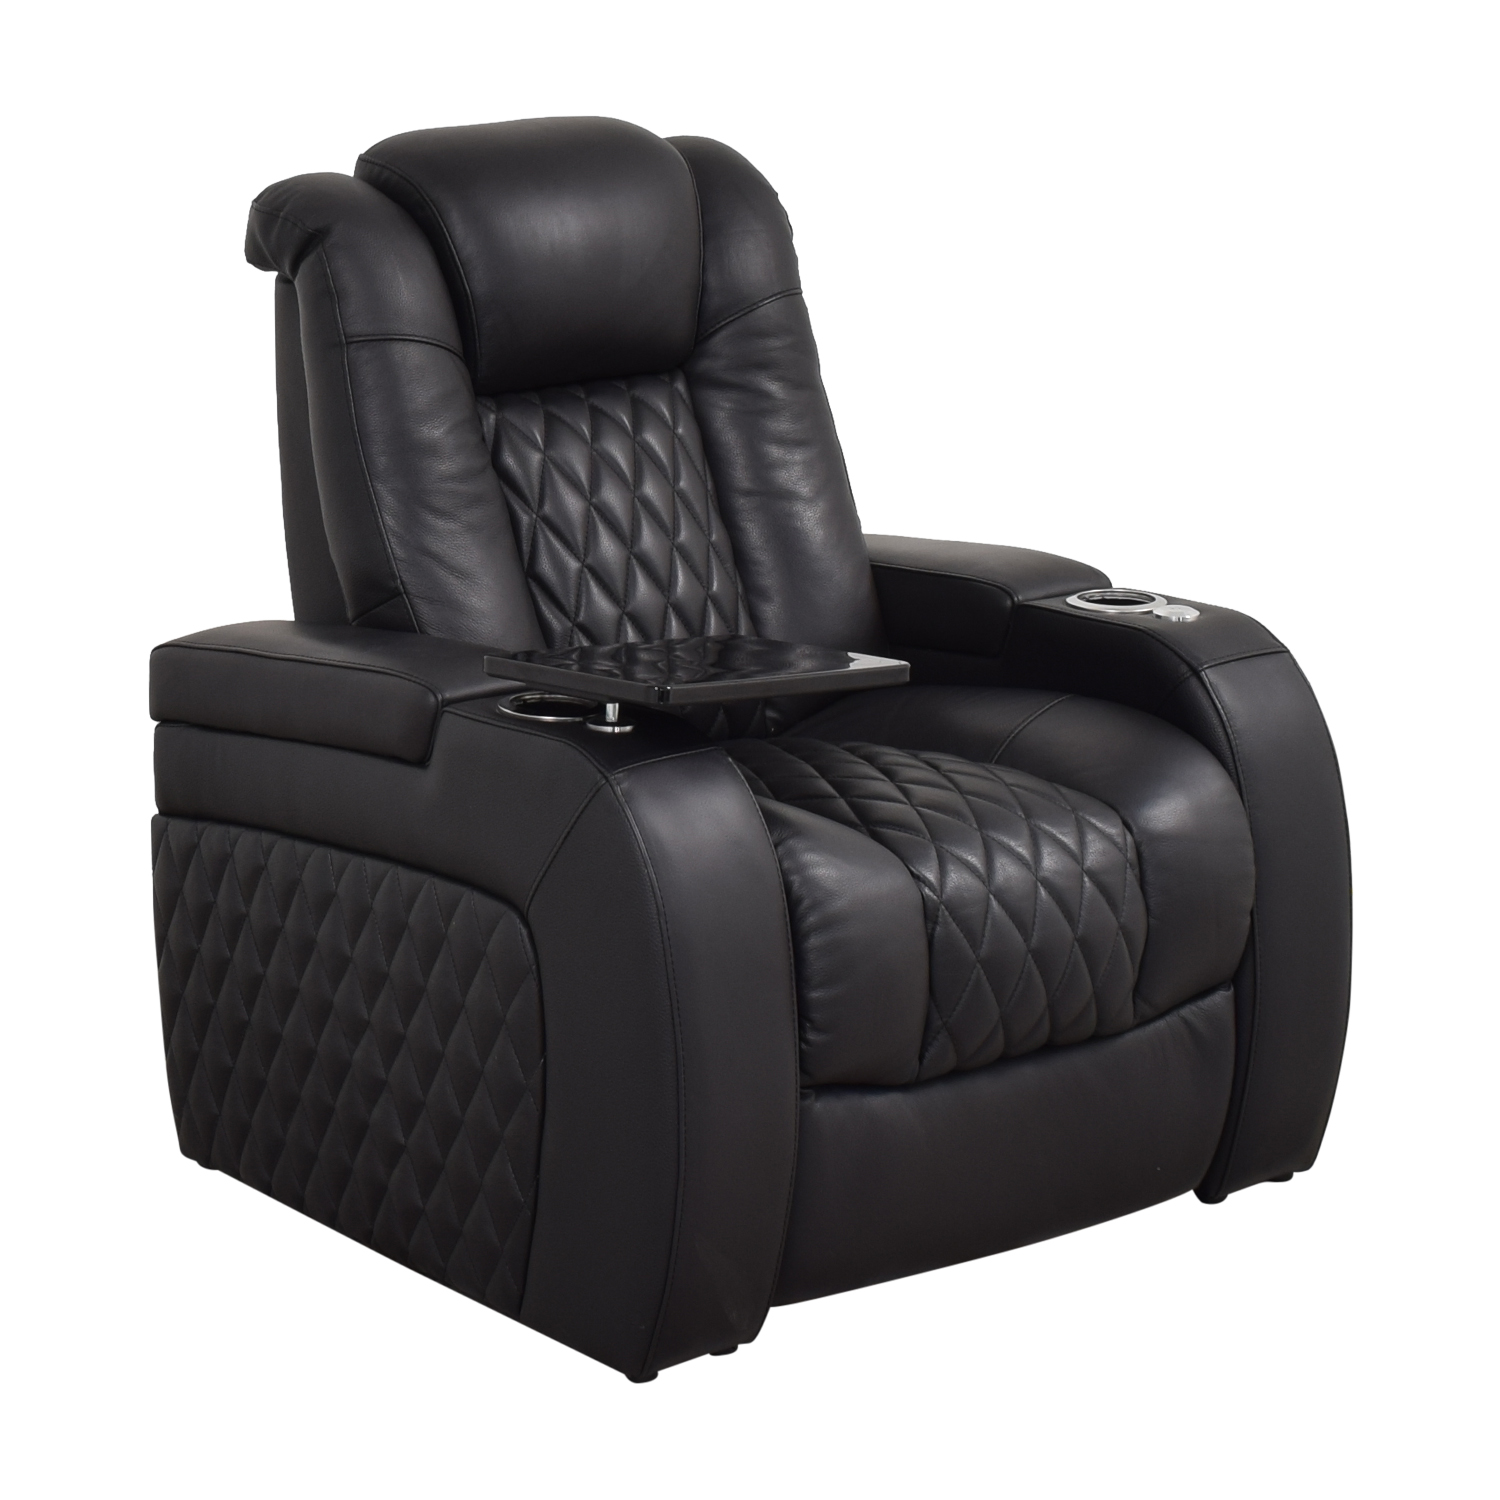 Seatcraft Seatcraft Diamante Home Theater Seating Leather Power Recliner Chairs